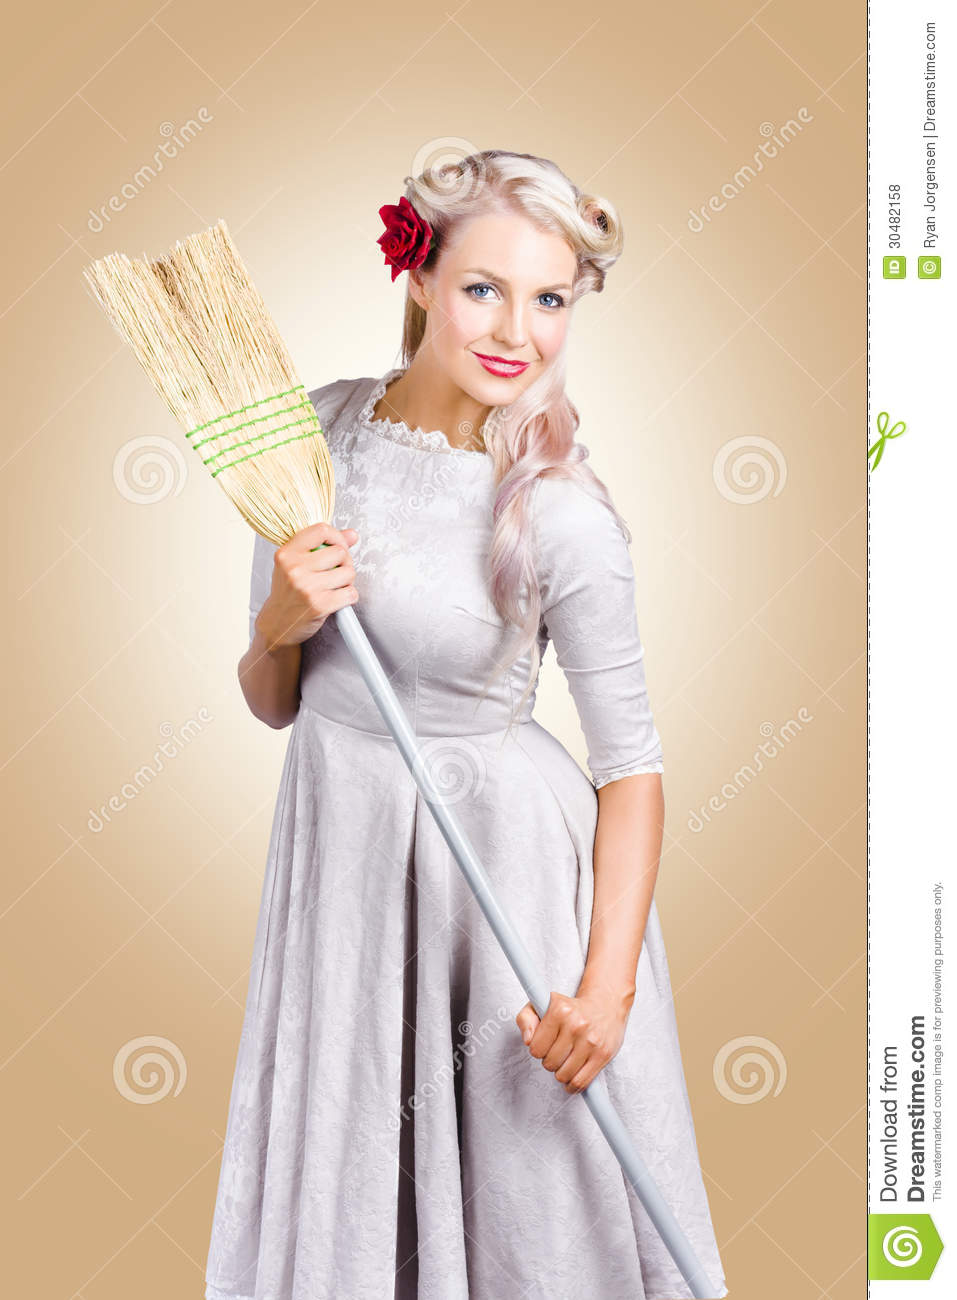 old fashion woman spring cleaning with broom stock photo